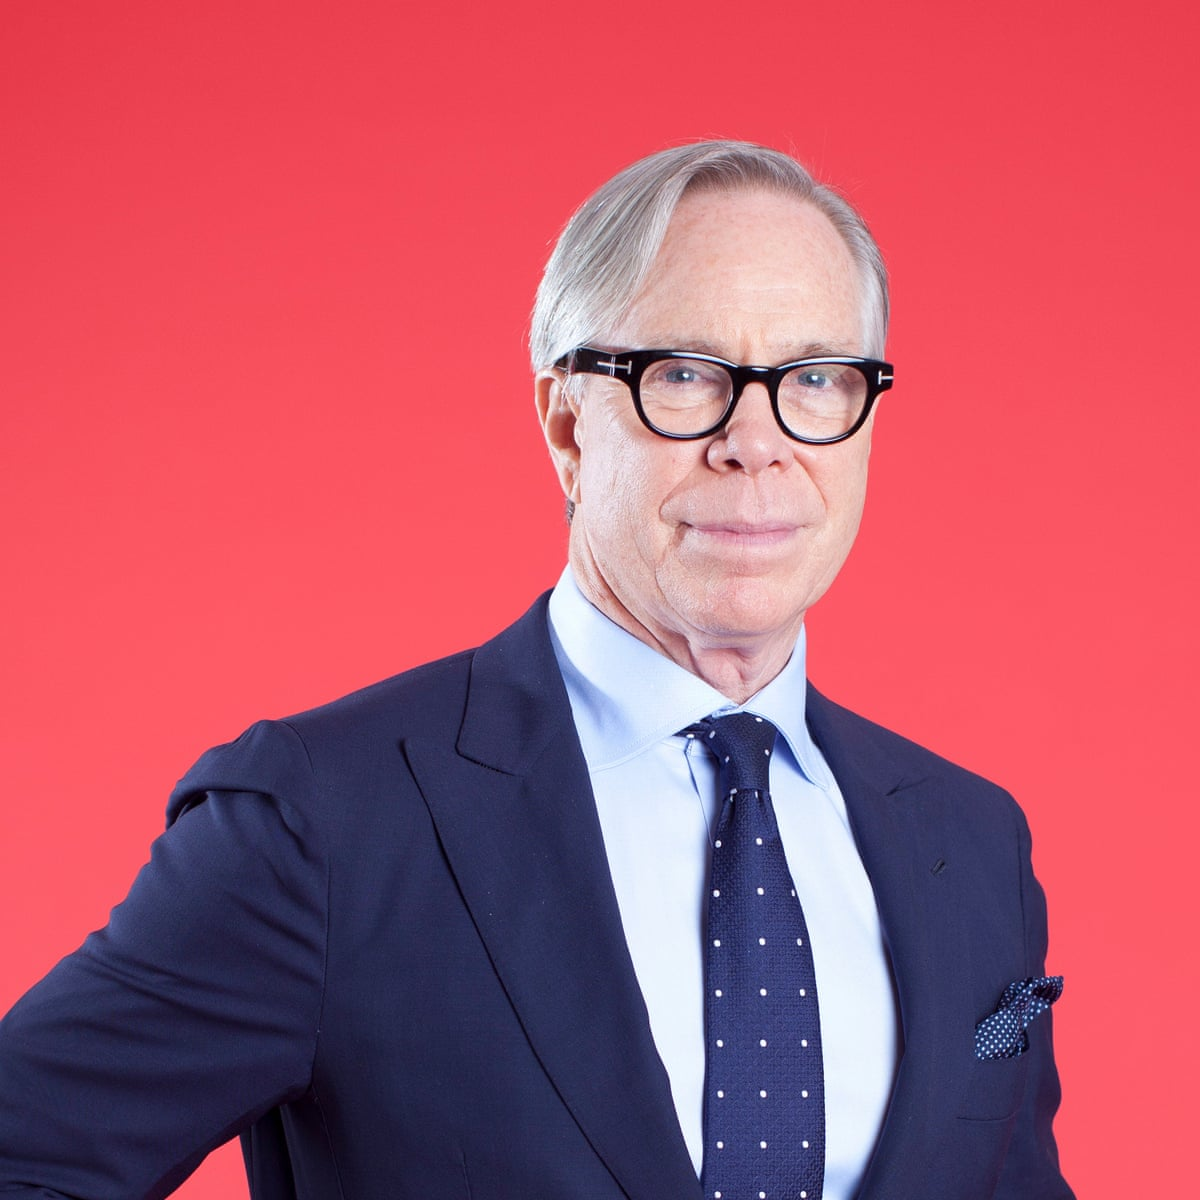 Proposta alternativa Marina Militare Esplicito  Tommy Hilfiger: 'My dad apologised for not being a great dad, which was  very moving' | Family | The Guardian